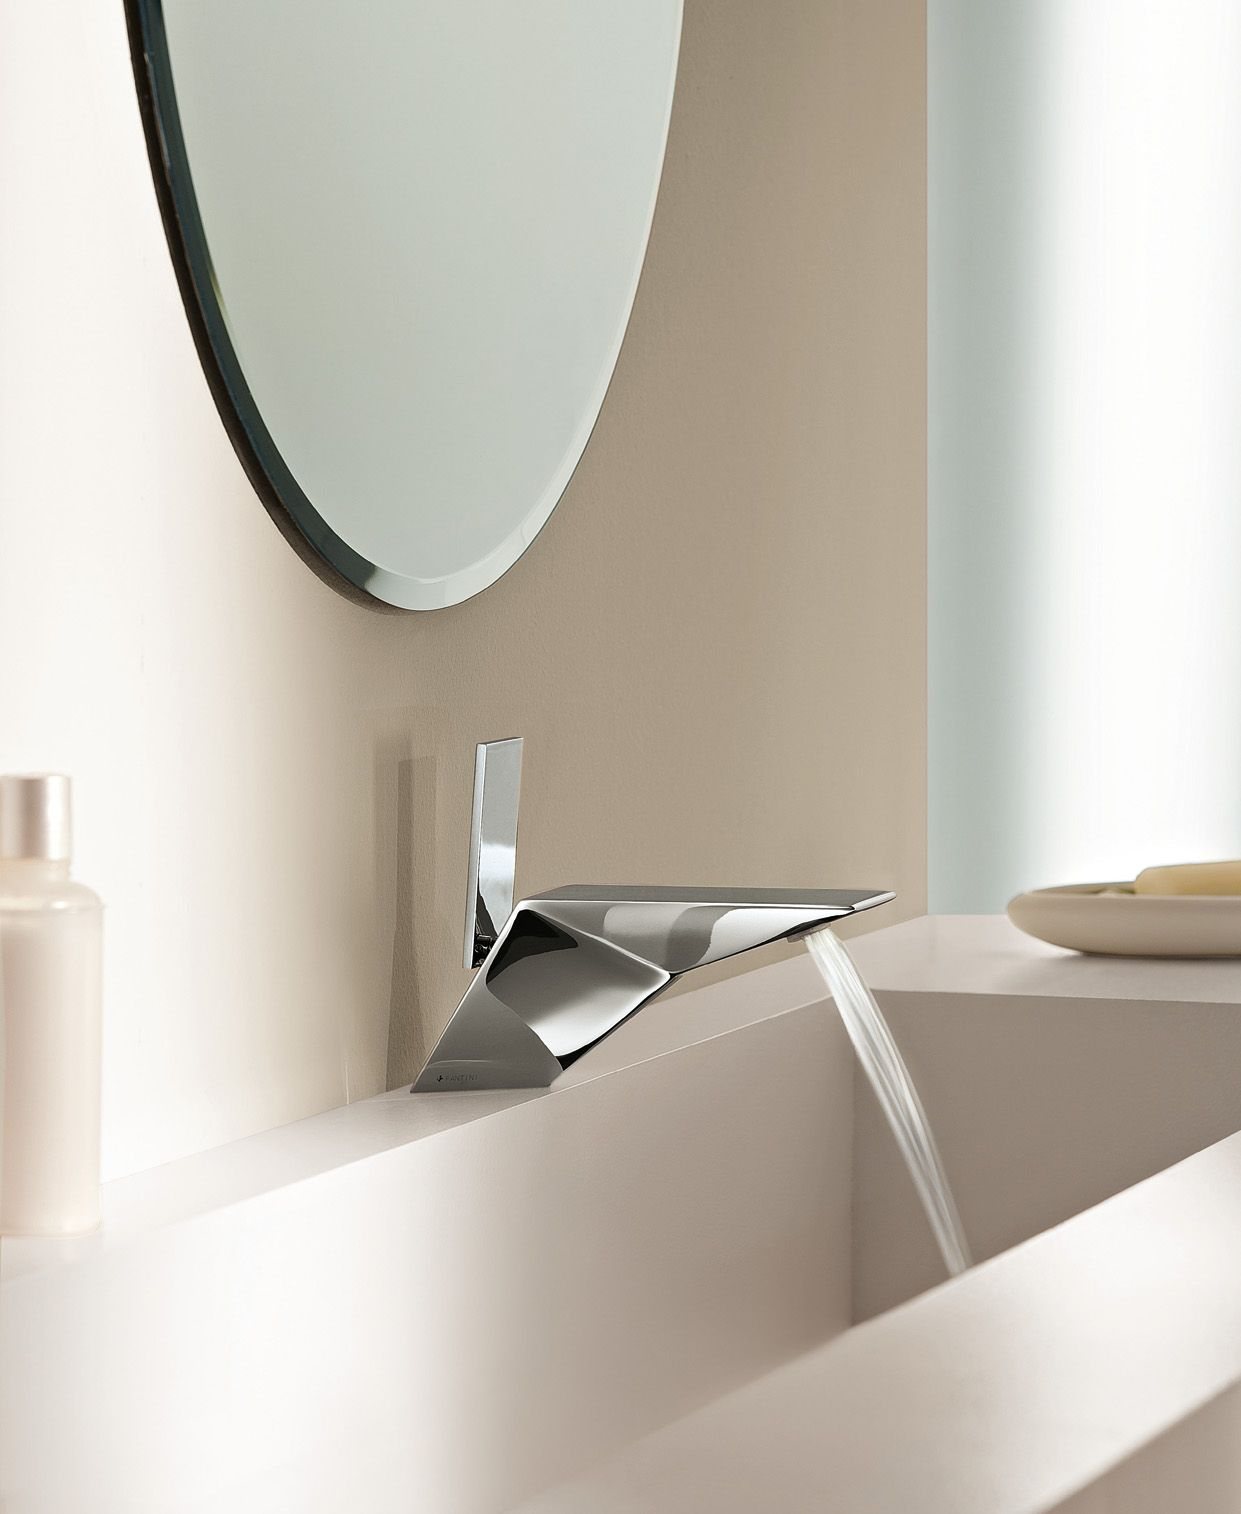 Fantini Bagno Belvedere Collection By Fantini Italia Italy Iteriordesign